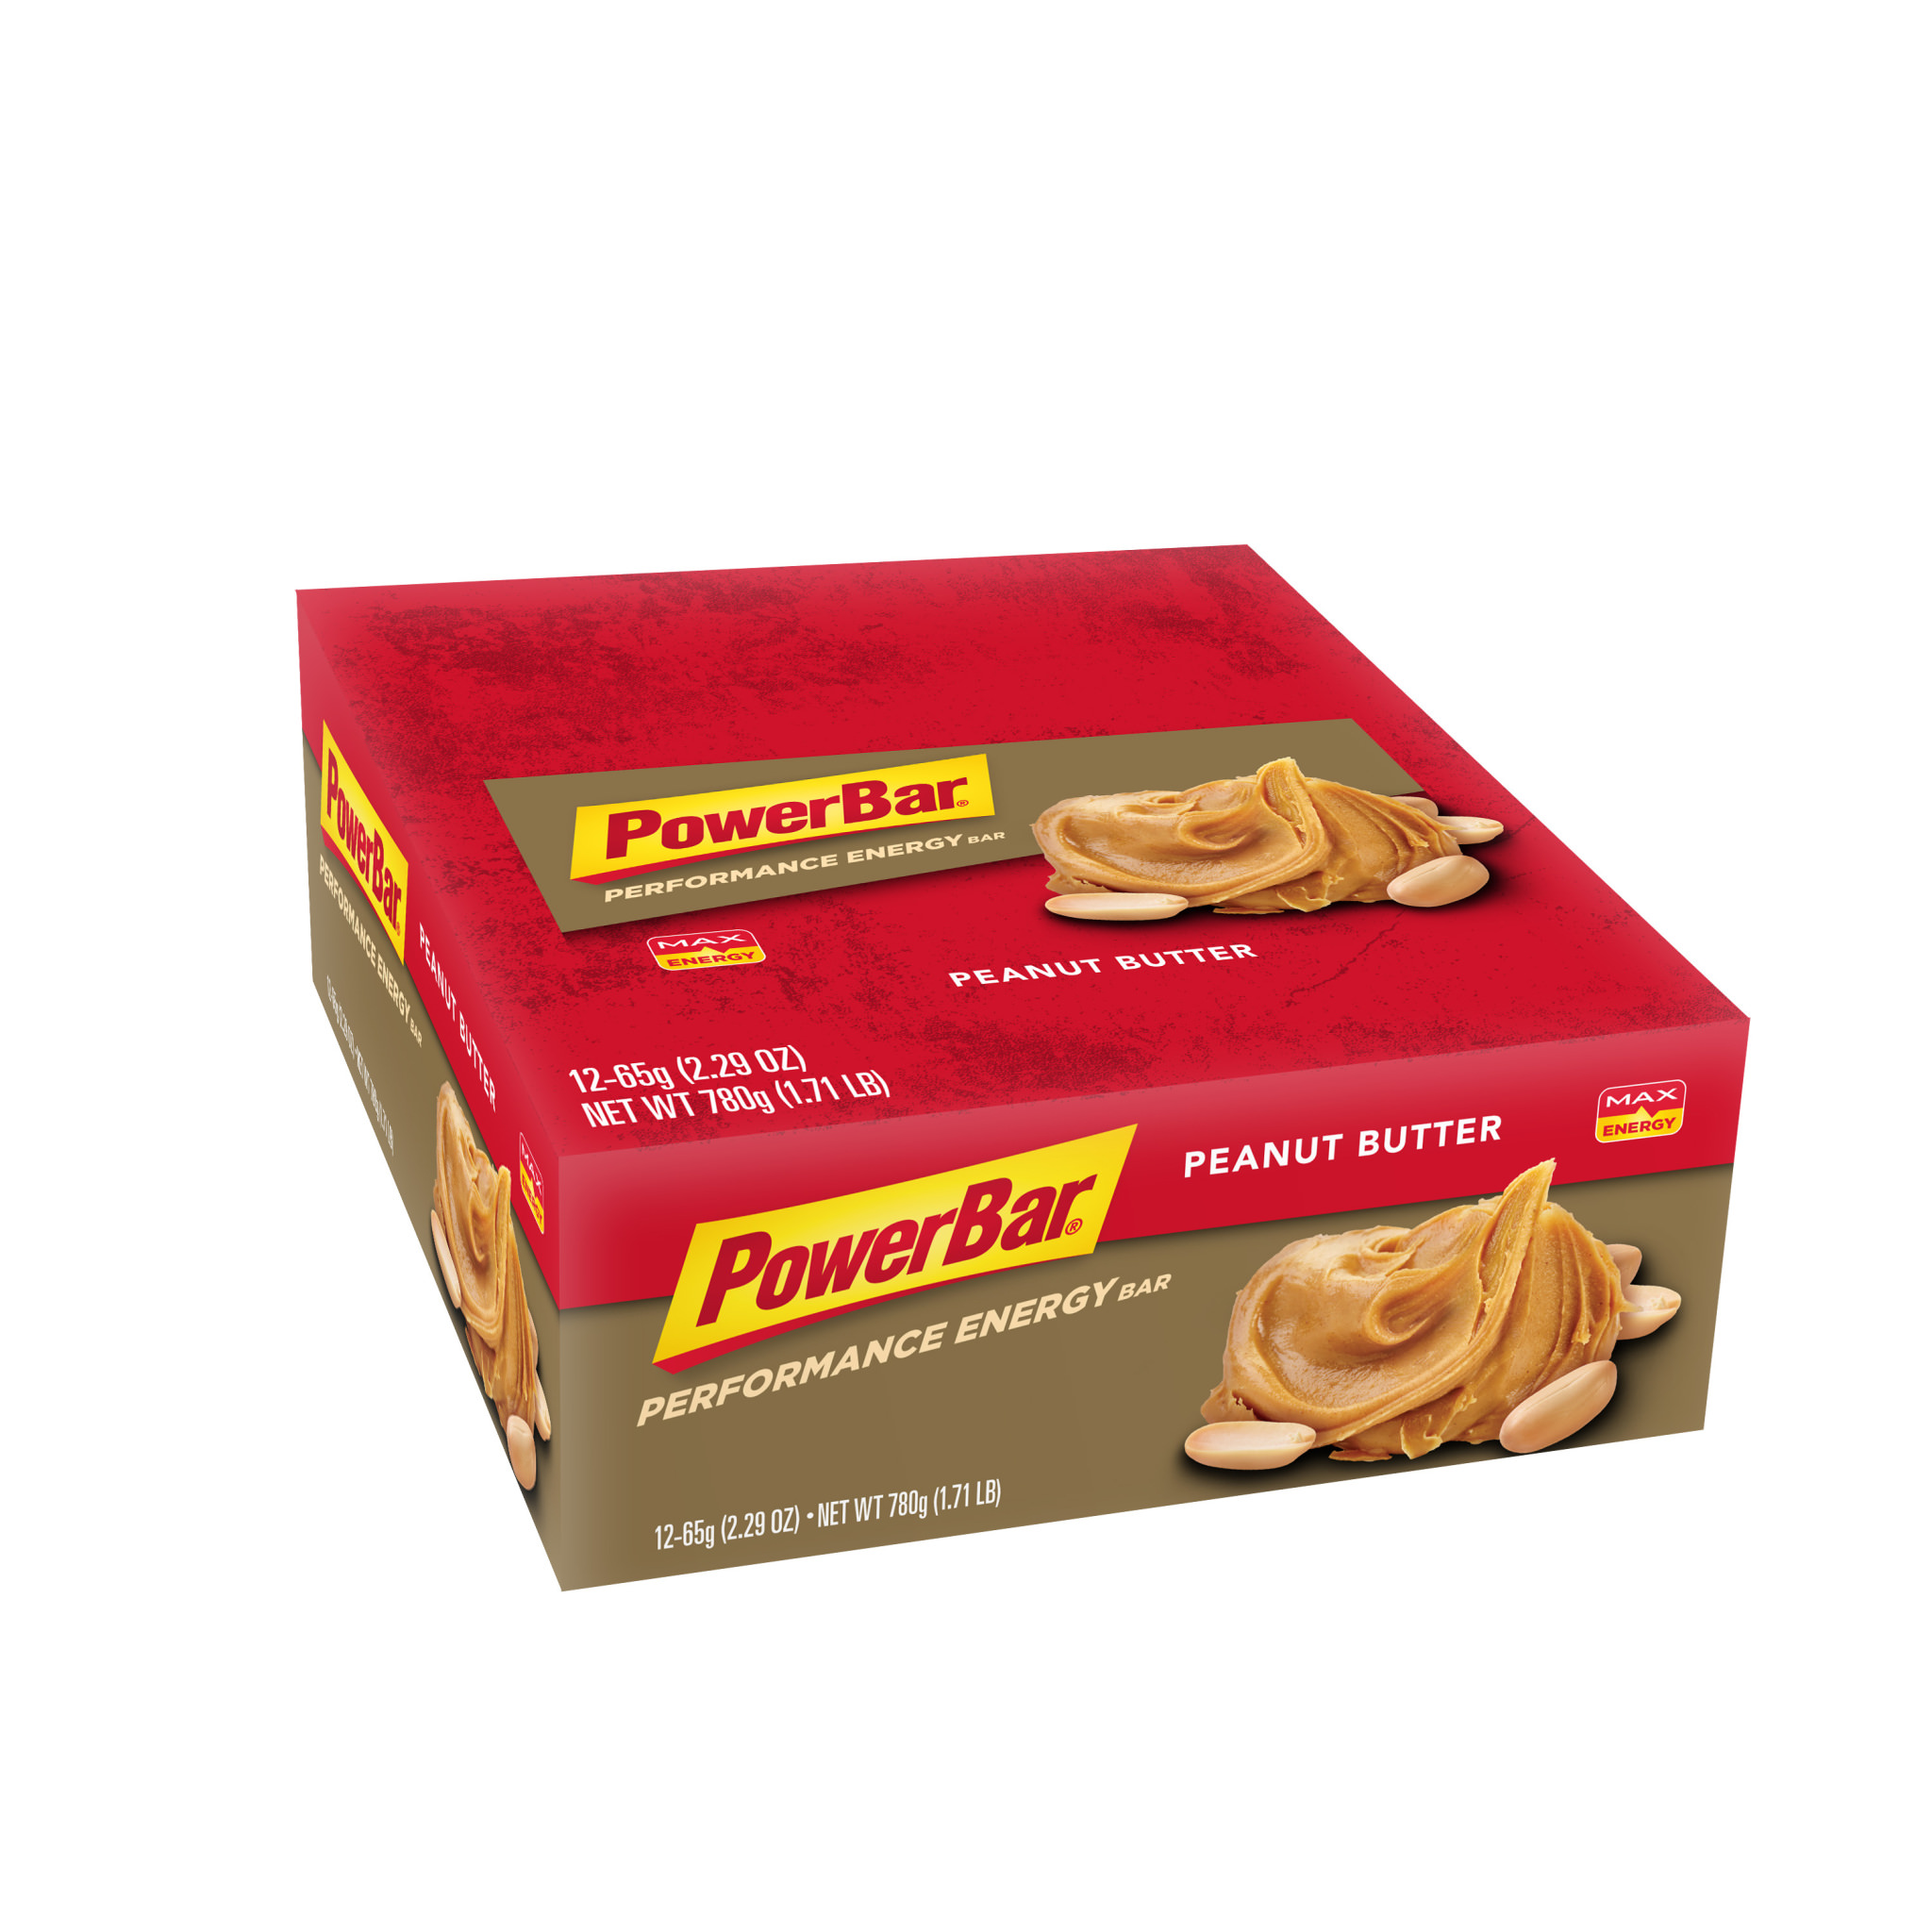 PowerBar Performance Energy Bar, Peanut Butter, 2.29 oz Bar, (12 Count)